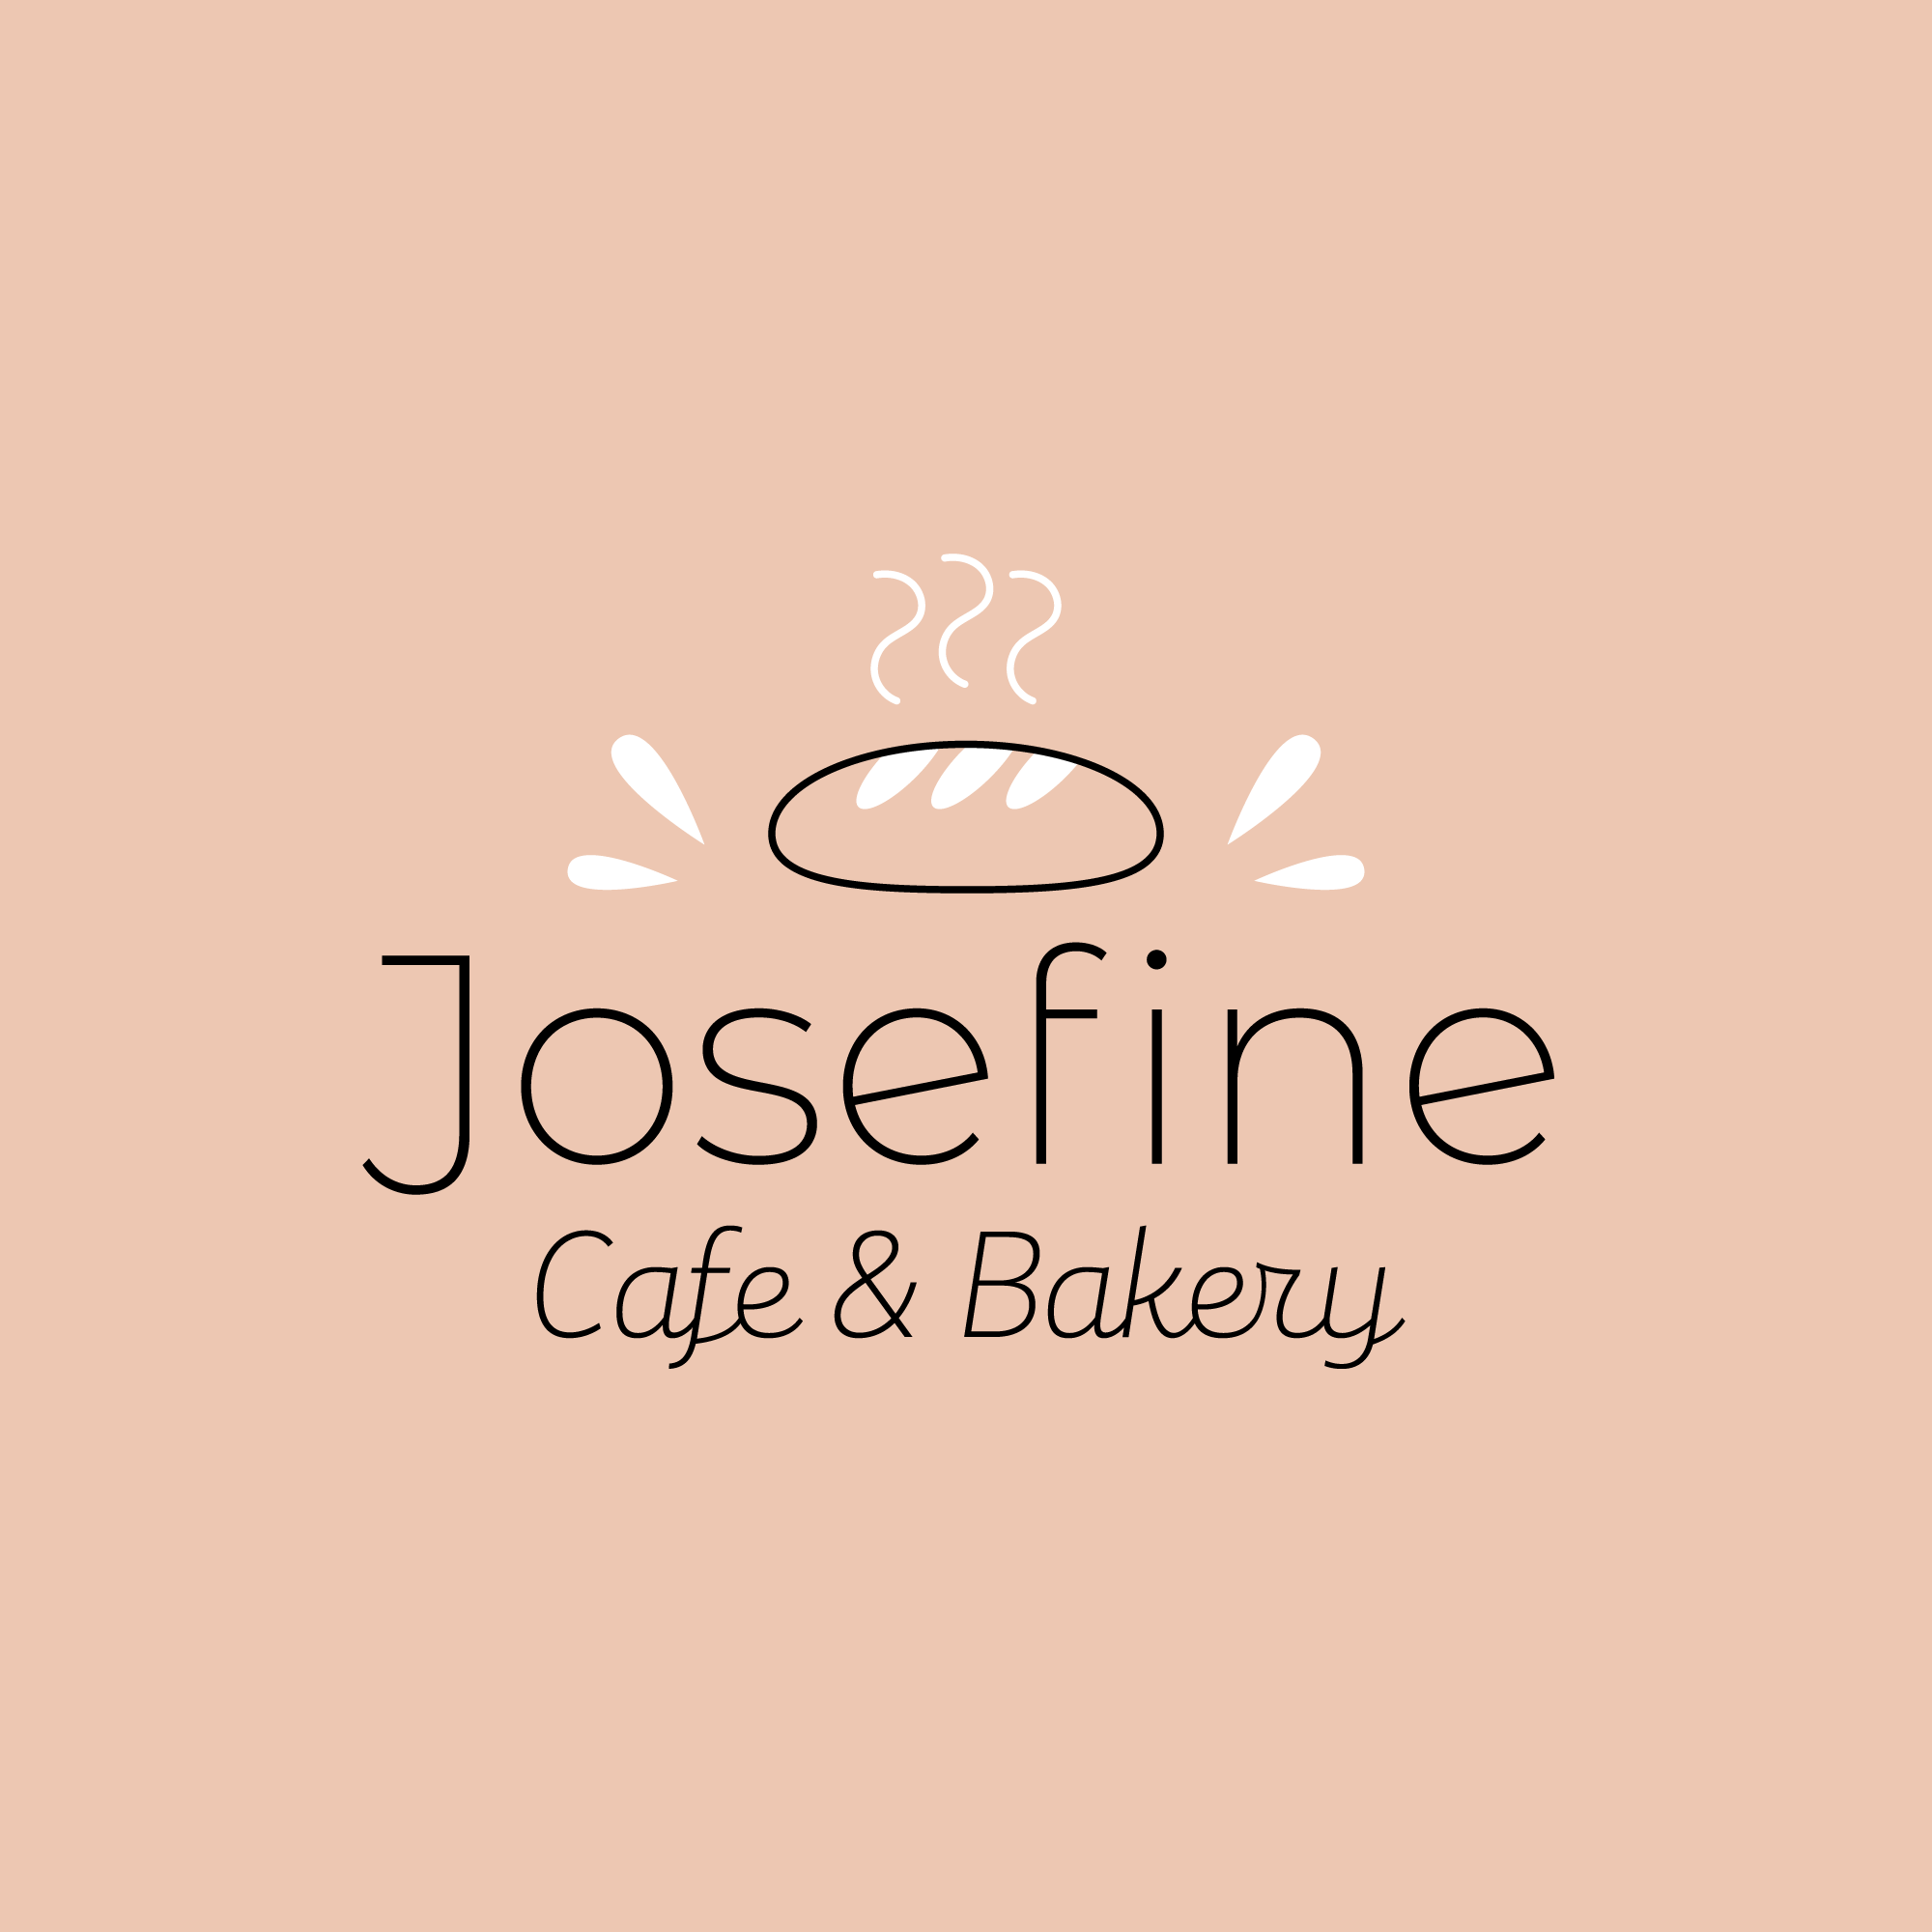 JOSEFINE CAFE AND BAKERY